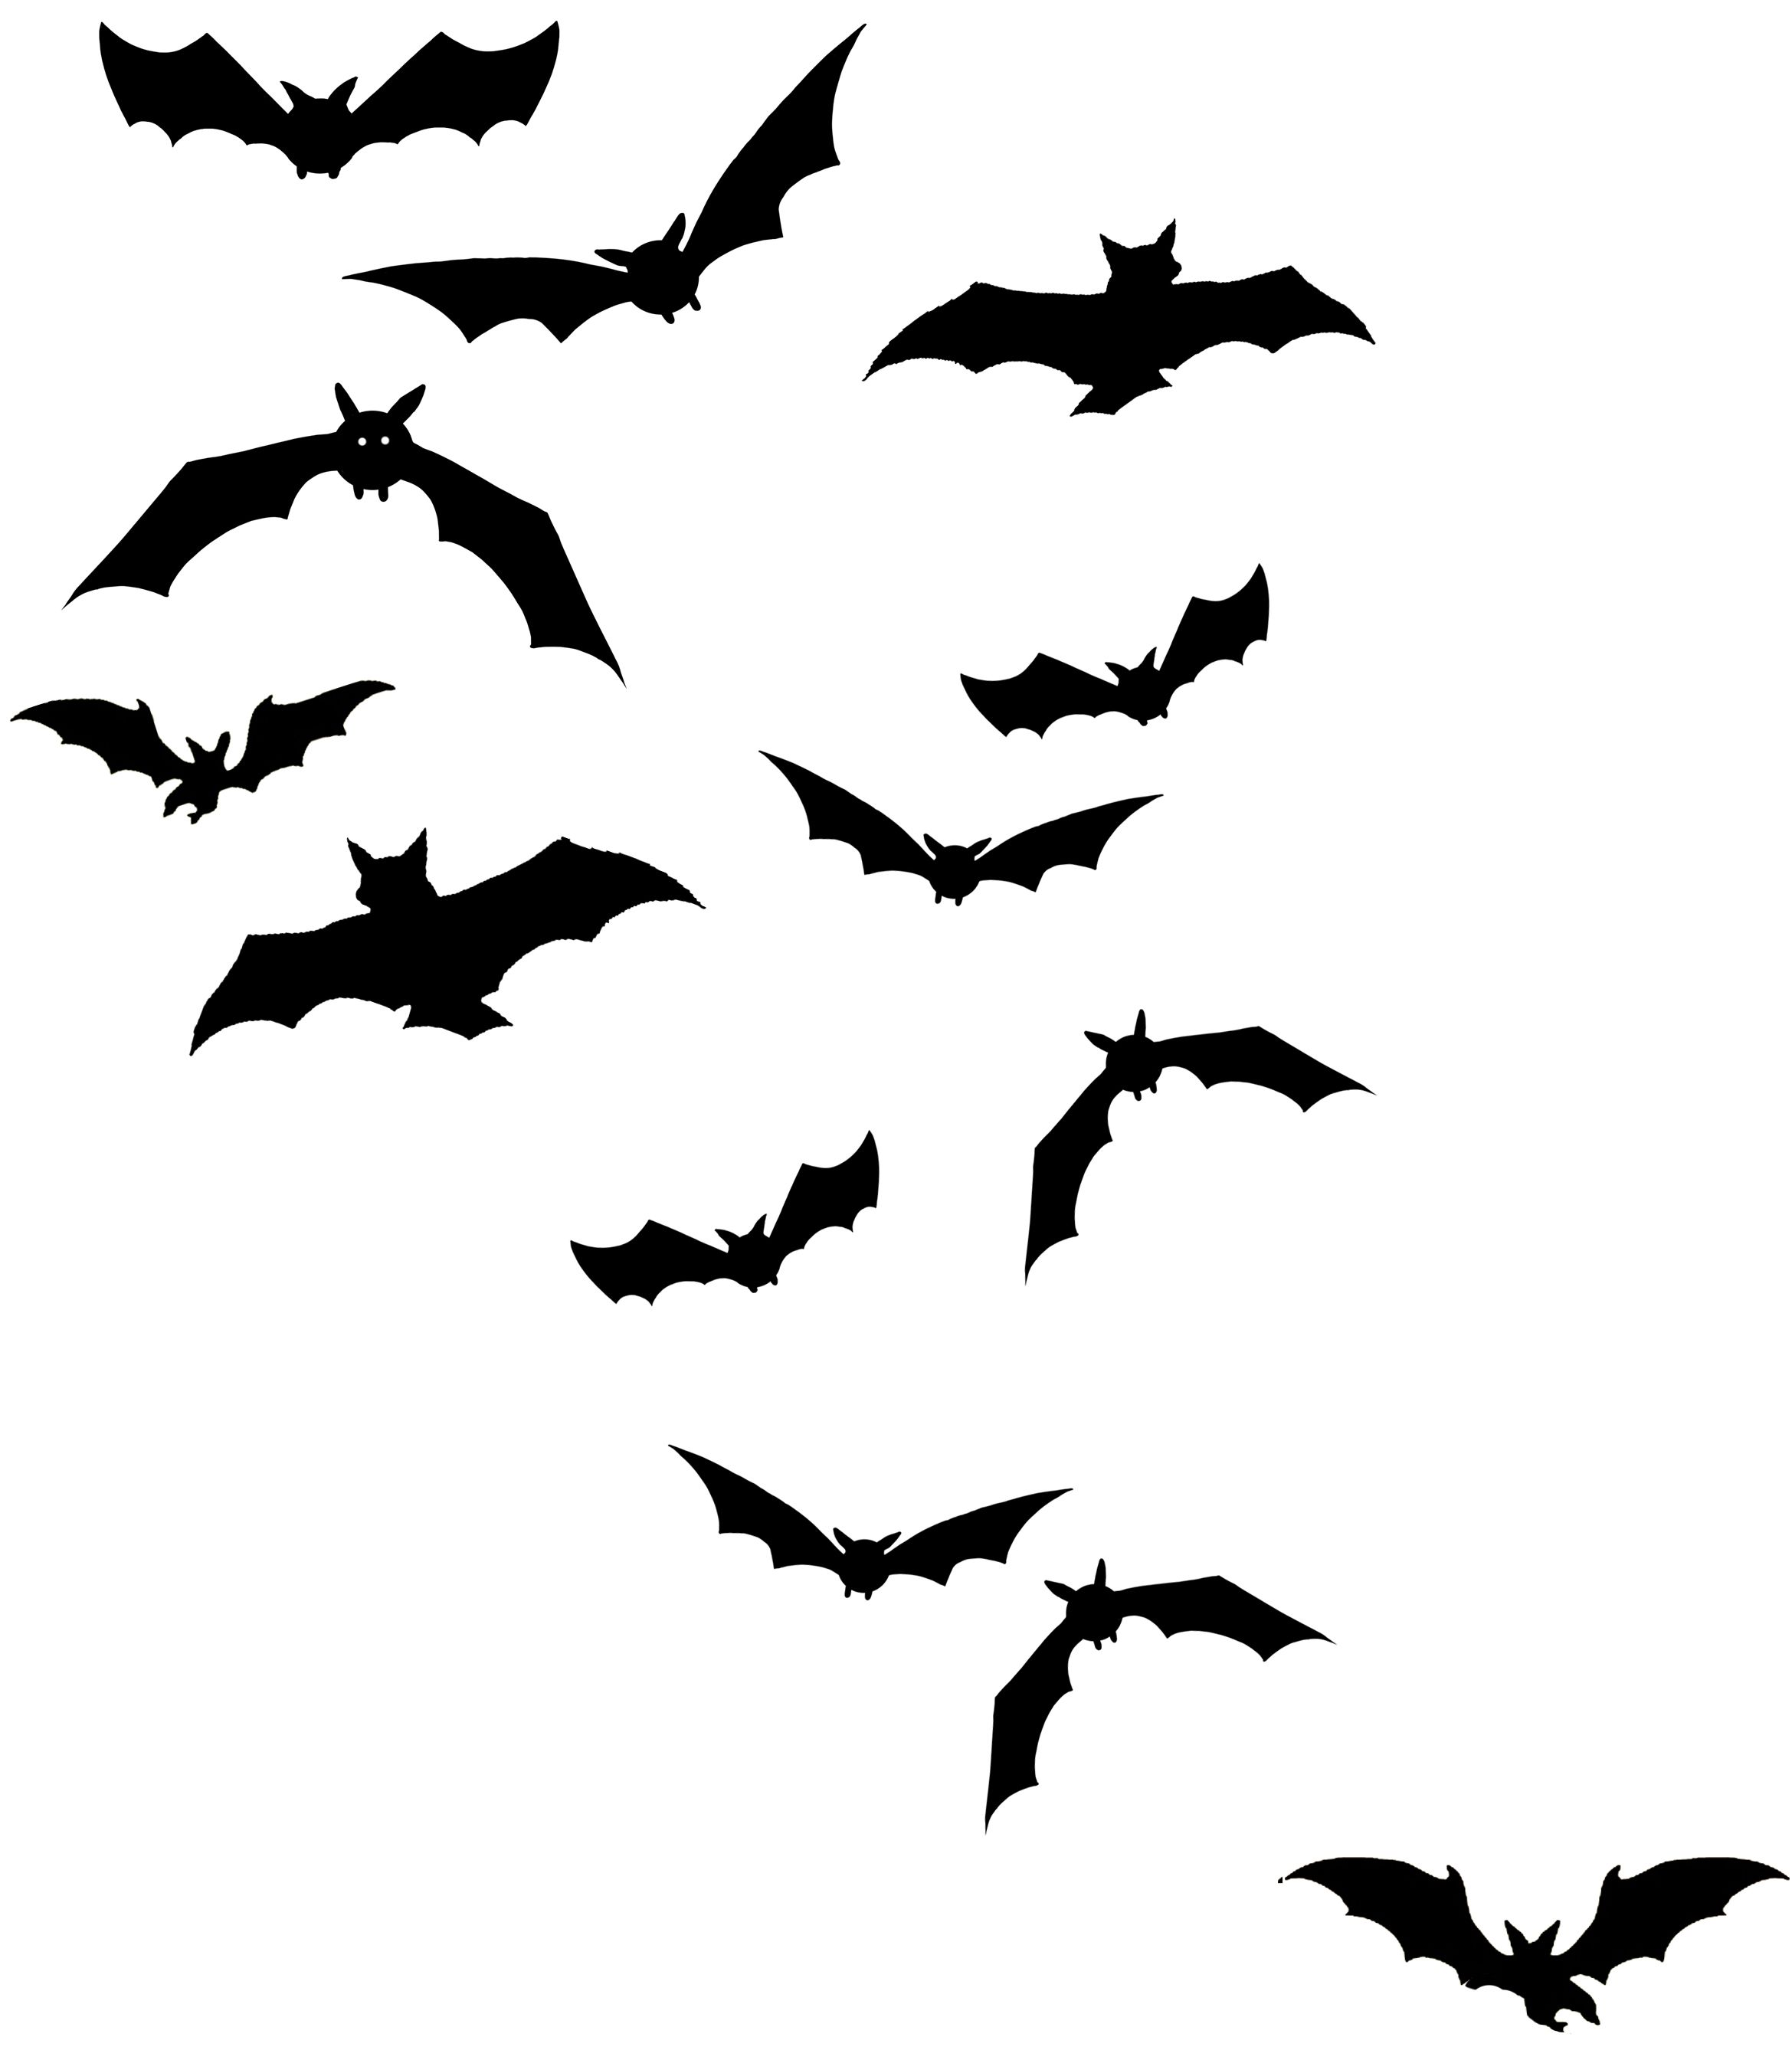 Bats clipart tattoo flash. Images for animated flying